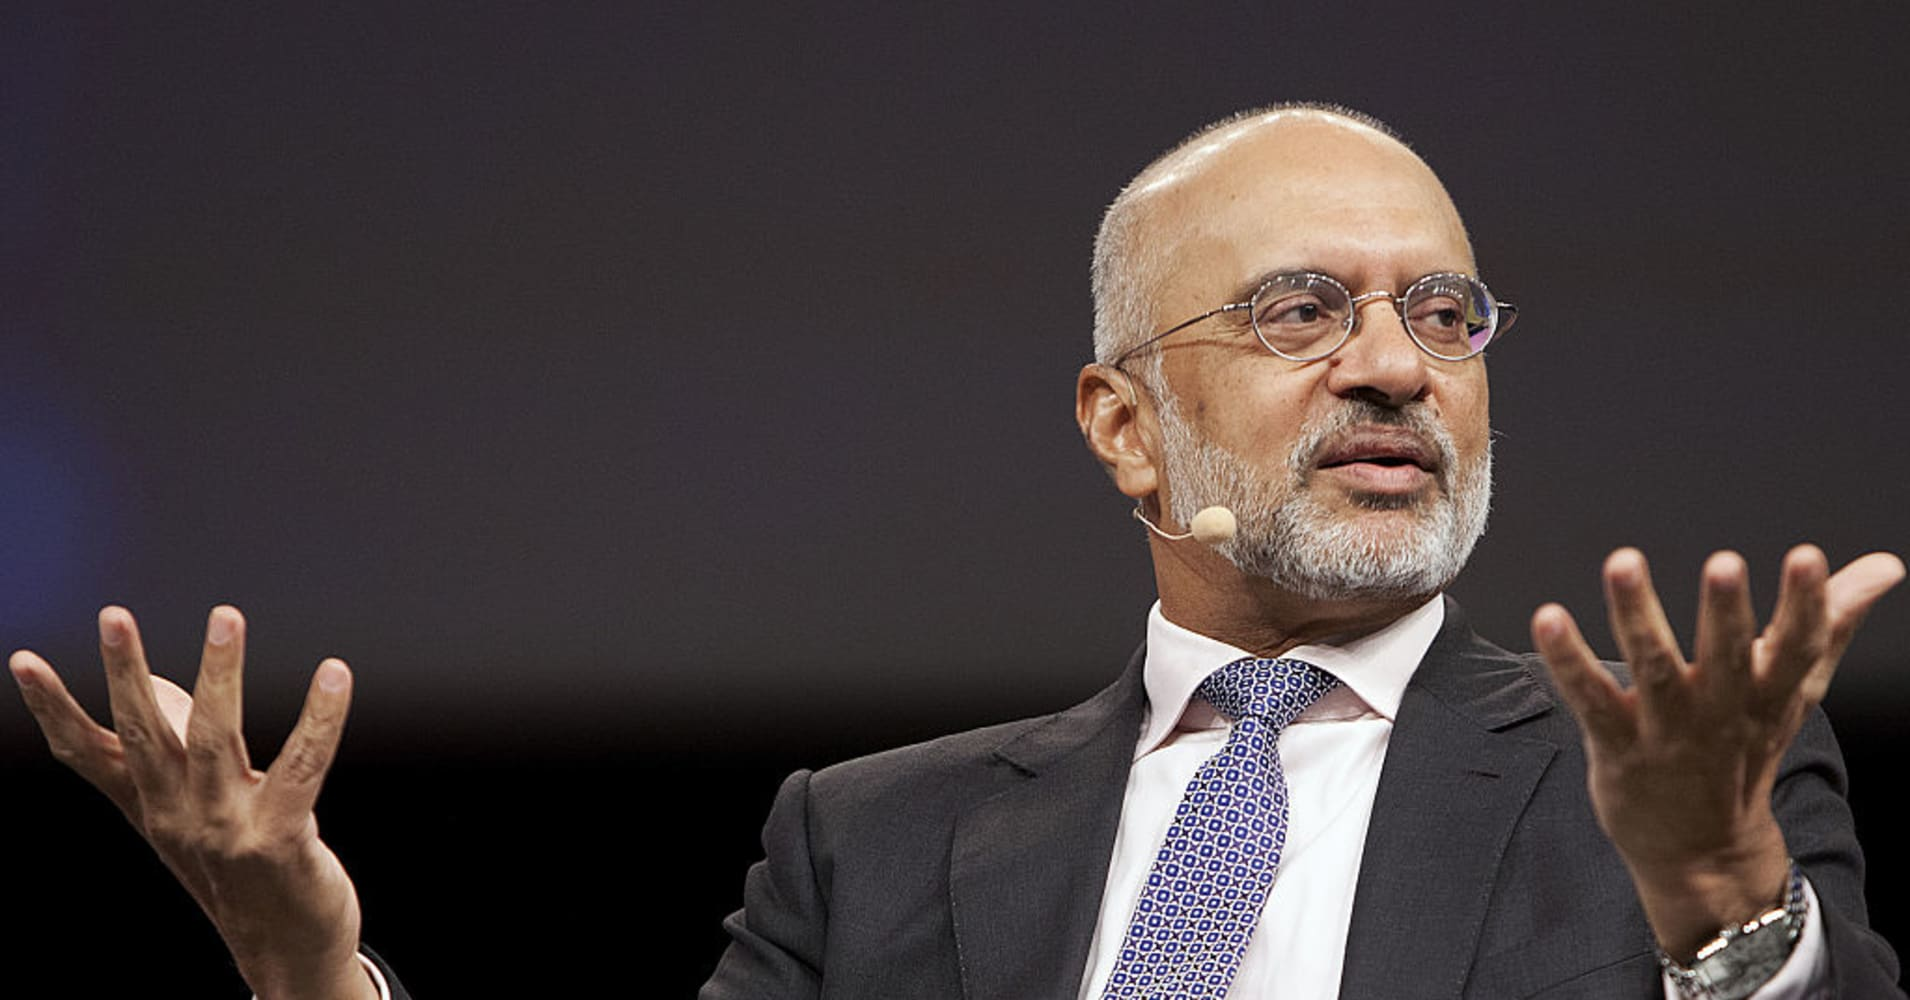 Piyush Gupta, CEO of DBS